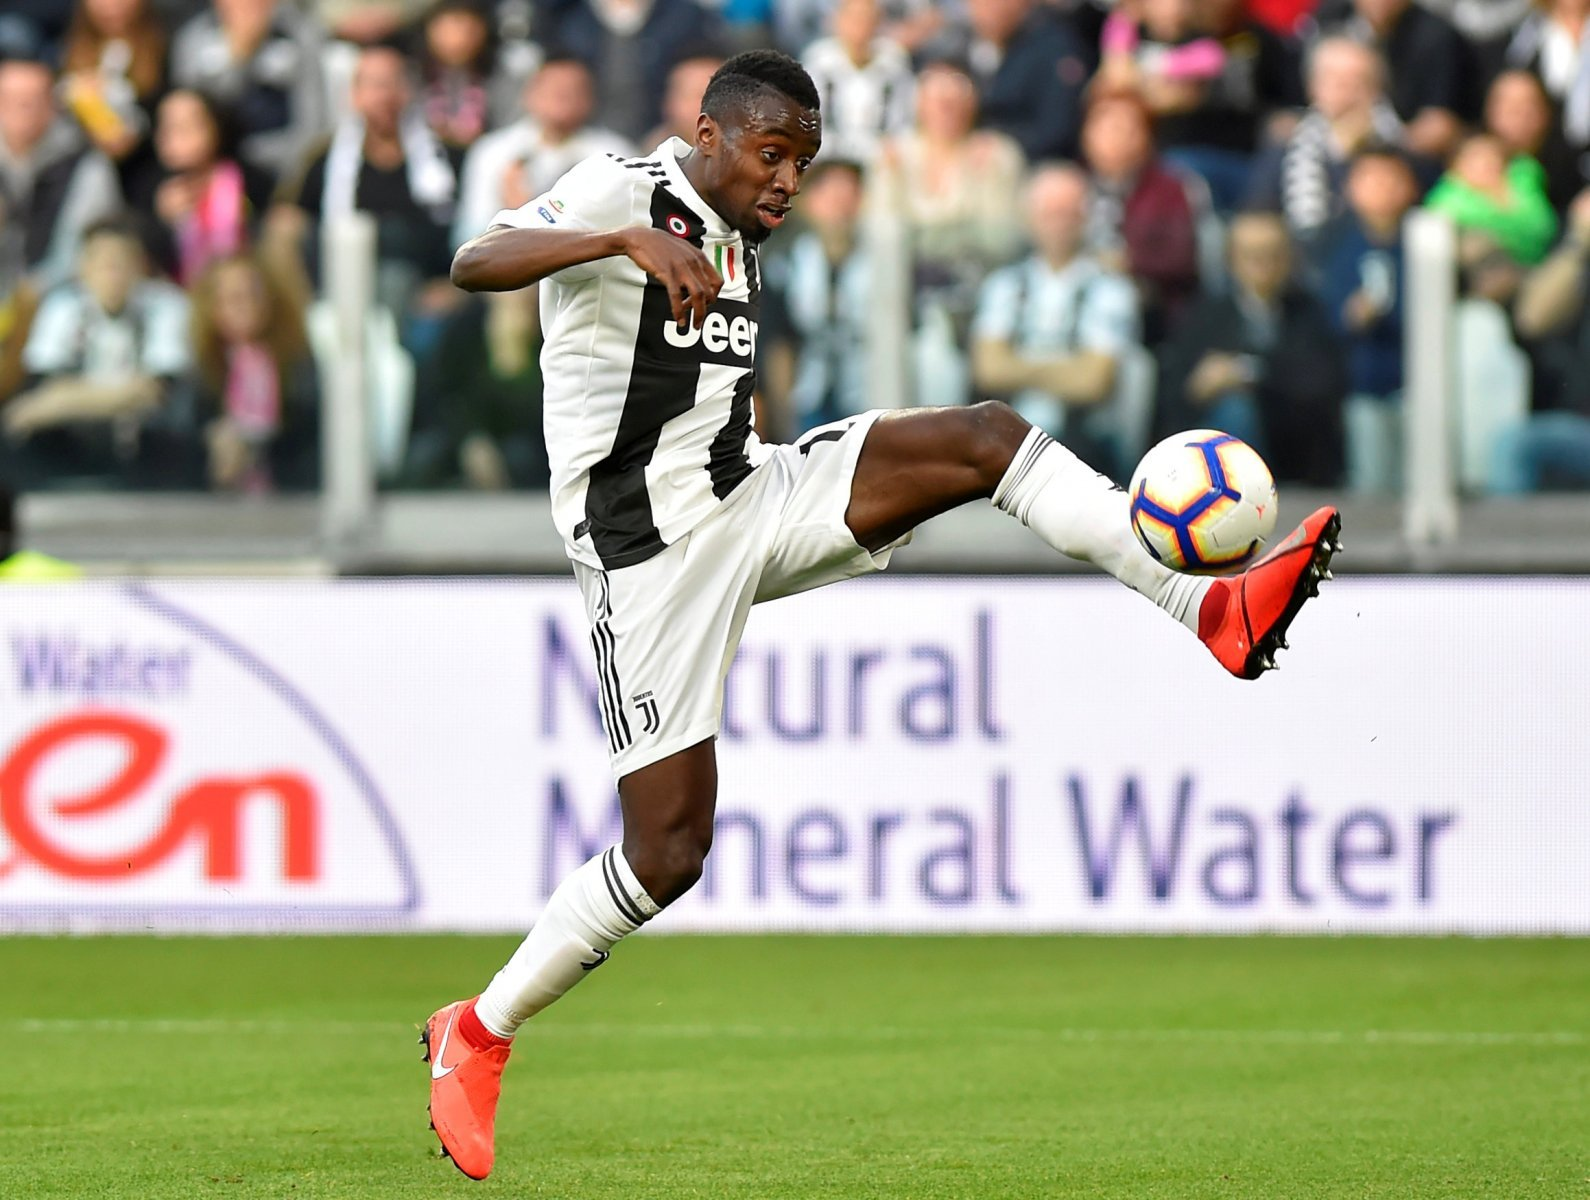 Juventus: Fans lambast Blasie Matuidi despite 'focus' on upcoming Champions League match